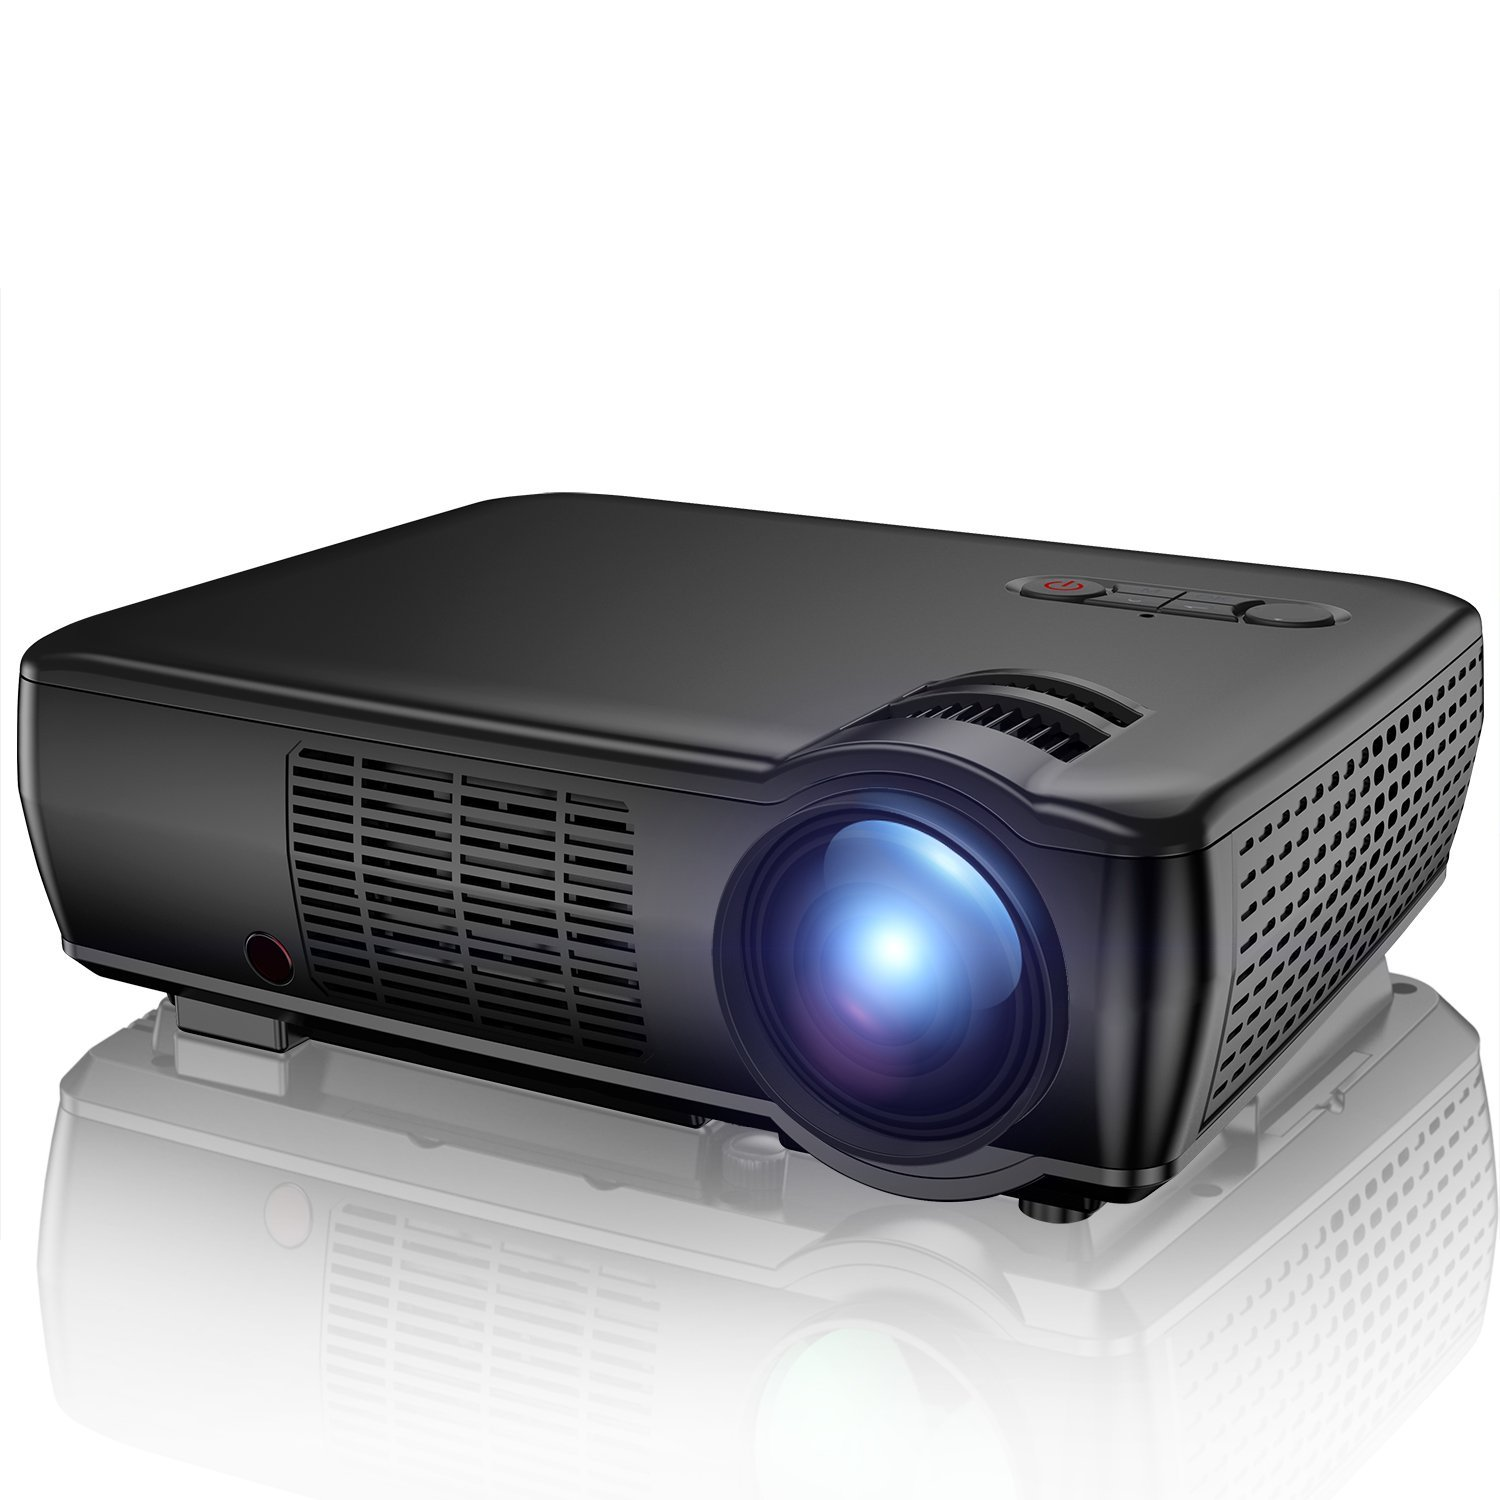 Projector tenker 2400 lumens portable video projector for Portable video projector